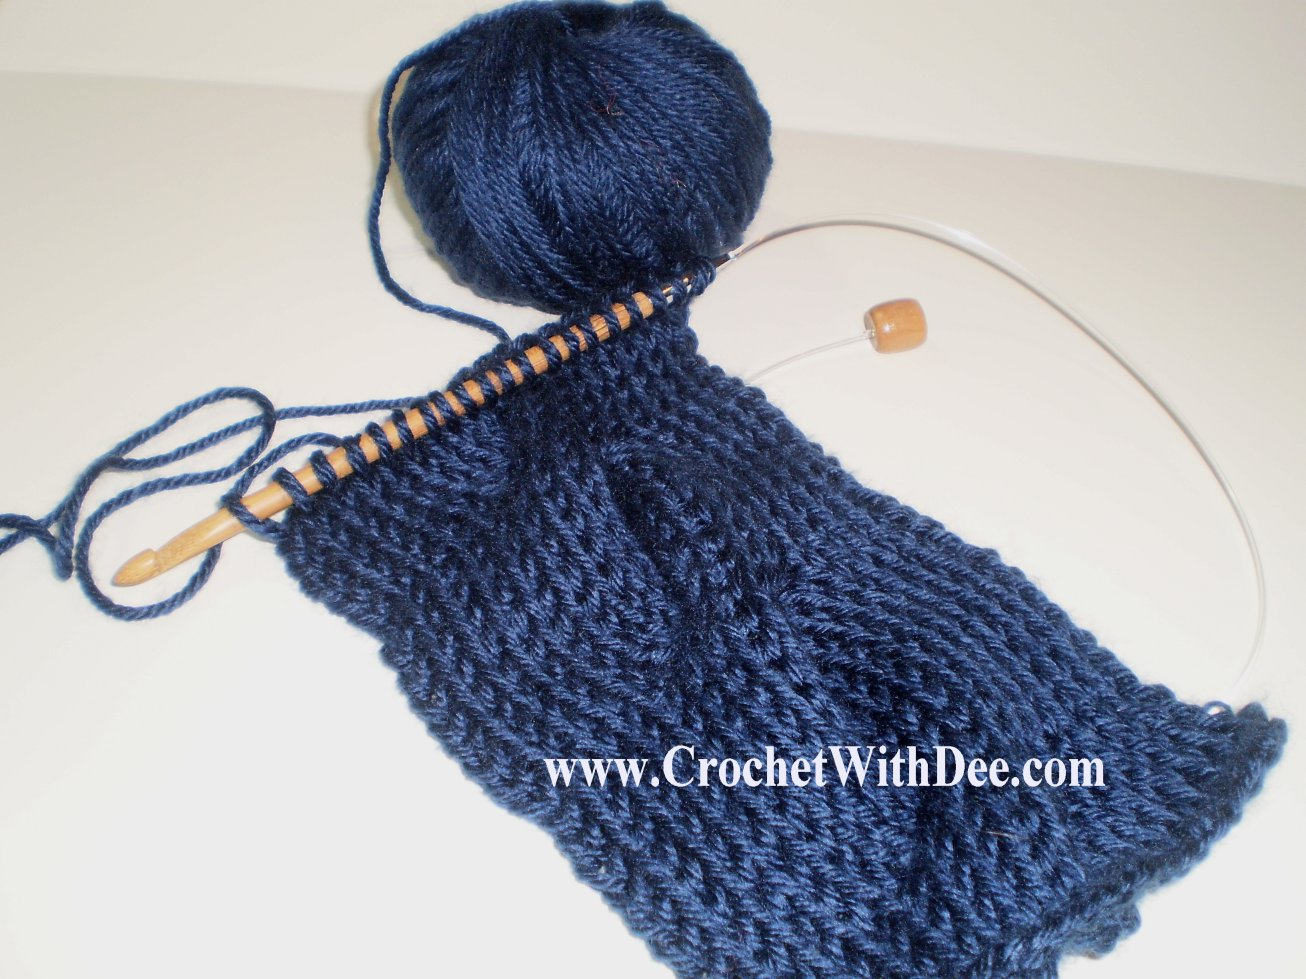 CrochetingWithDee.com: 60/60 leads to taking a crochet class